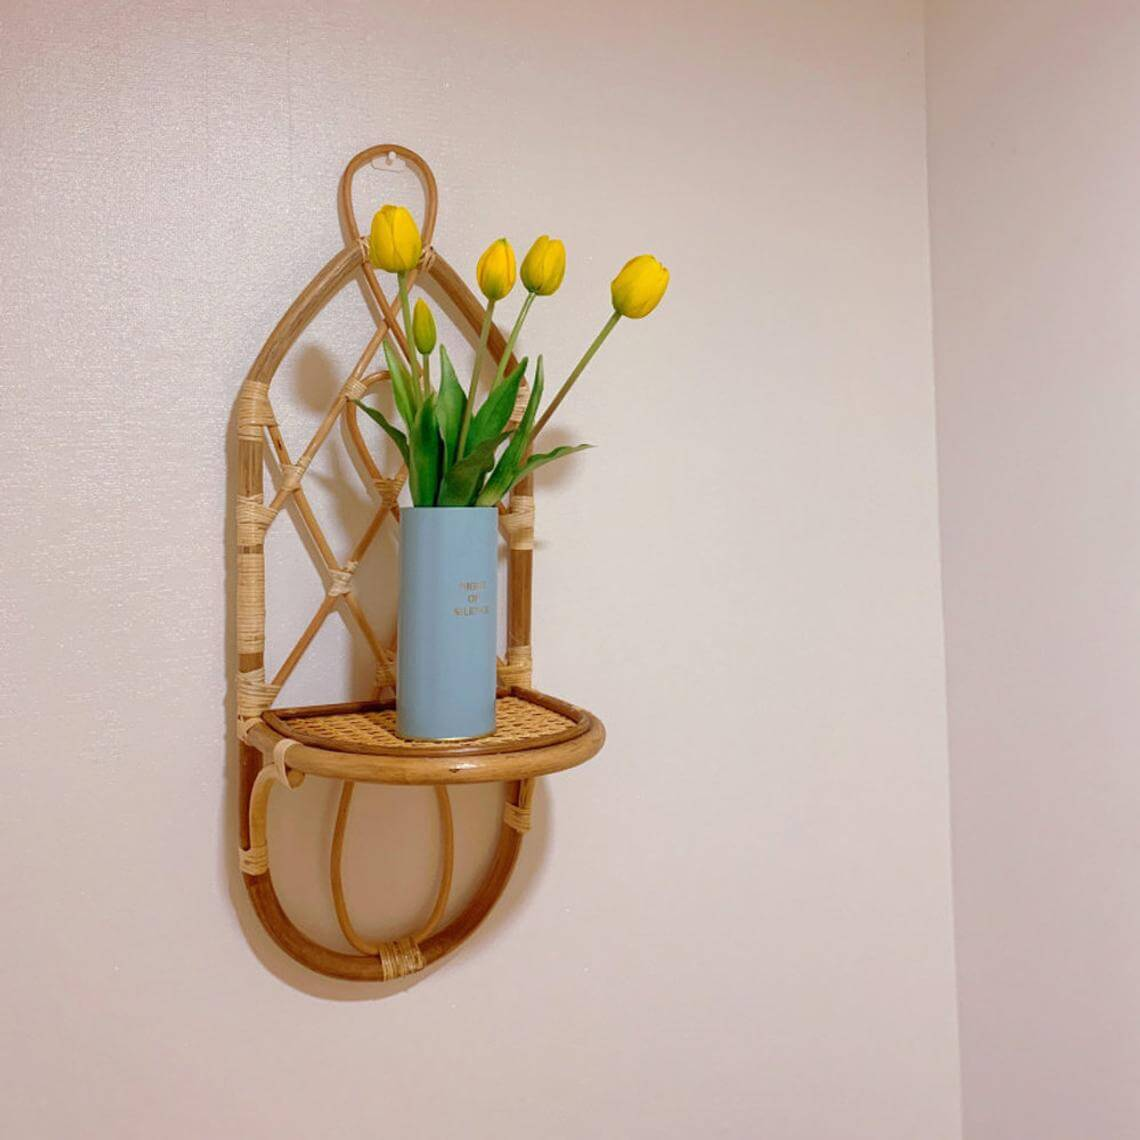 Woven Bamboo Wall Sconce Shelf